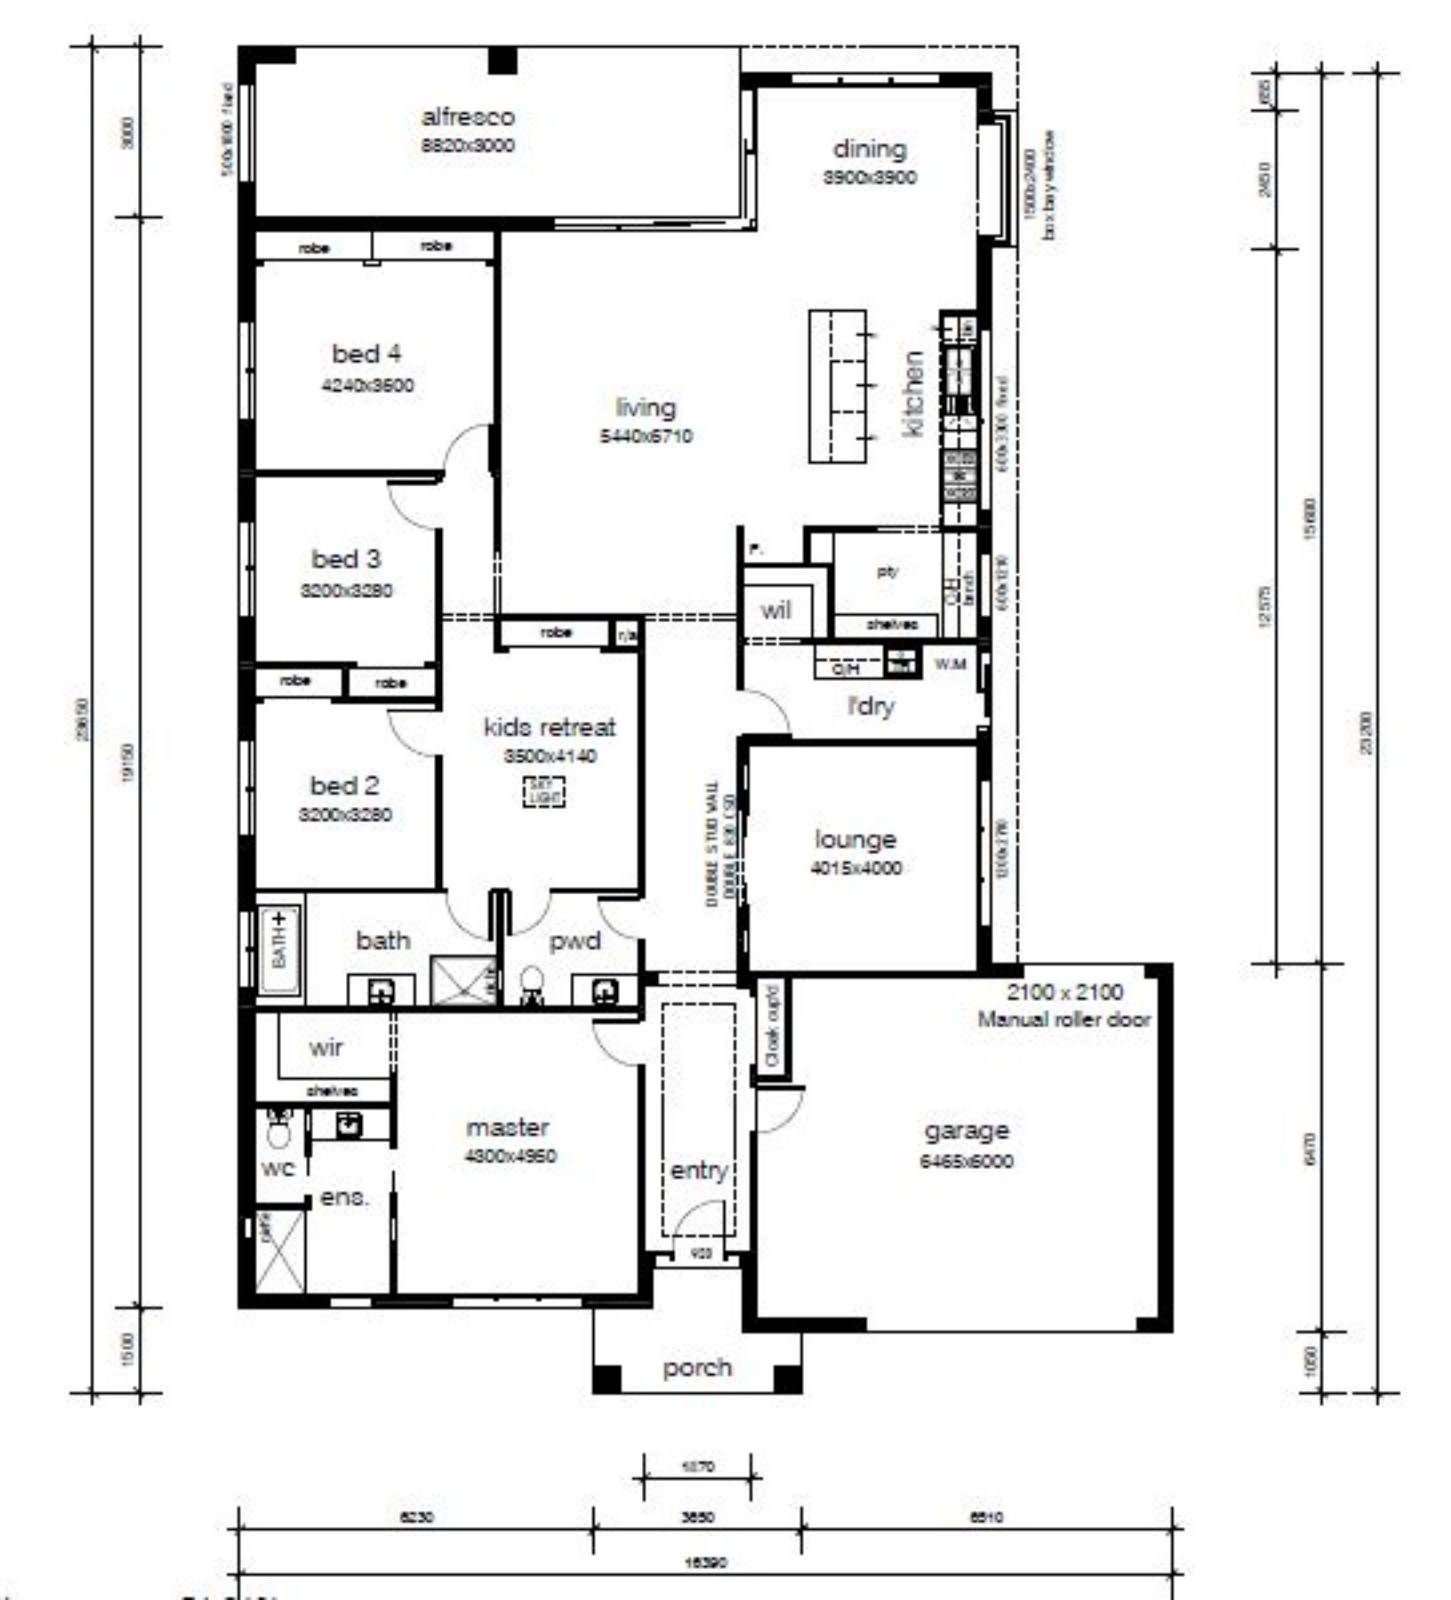 what height windows and doors for a 3 meter ceiling?